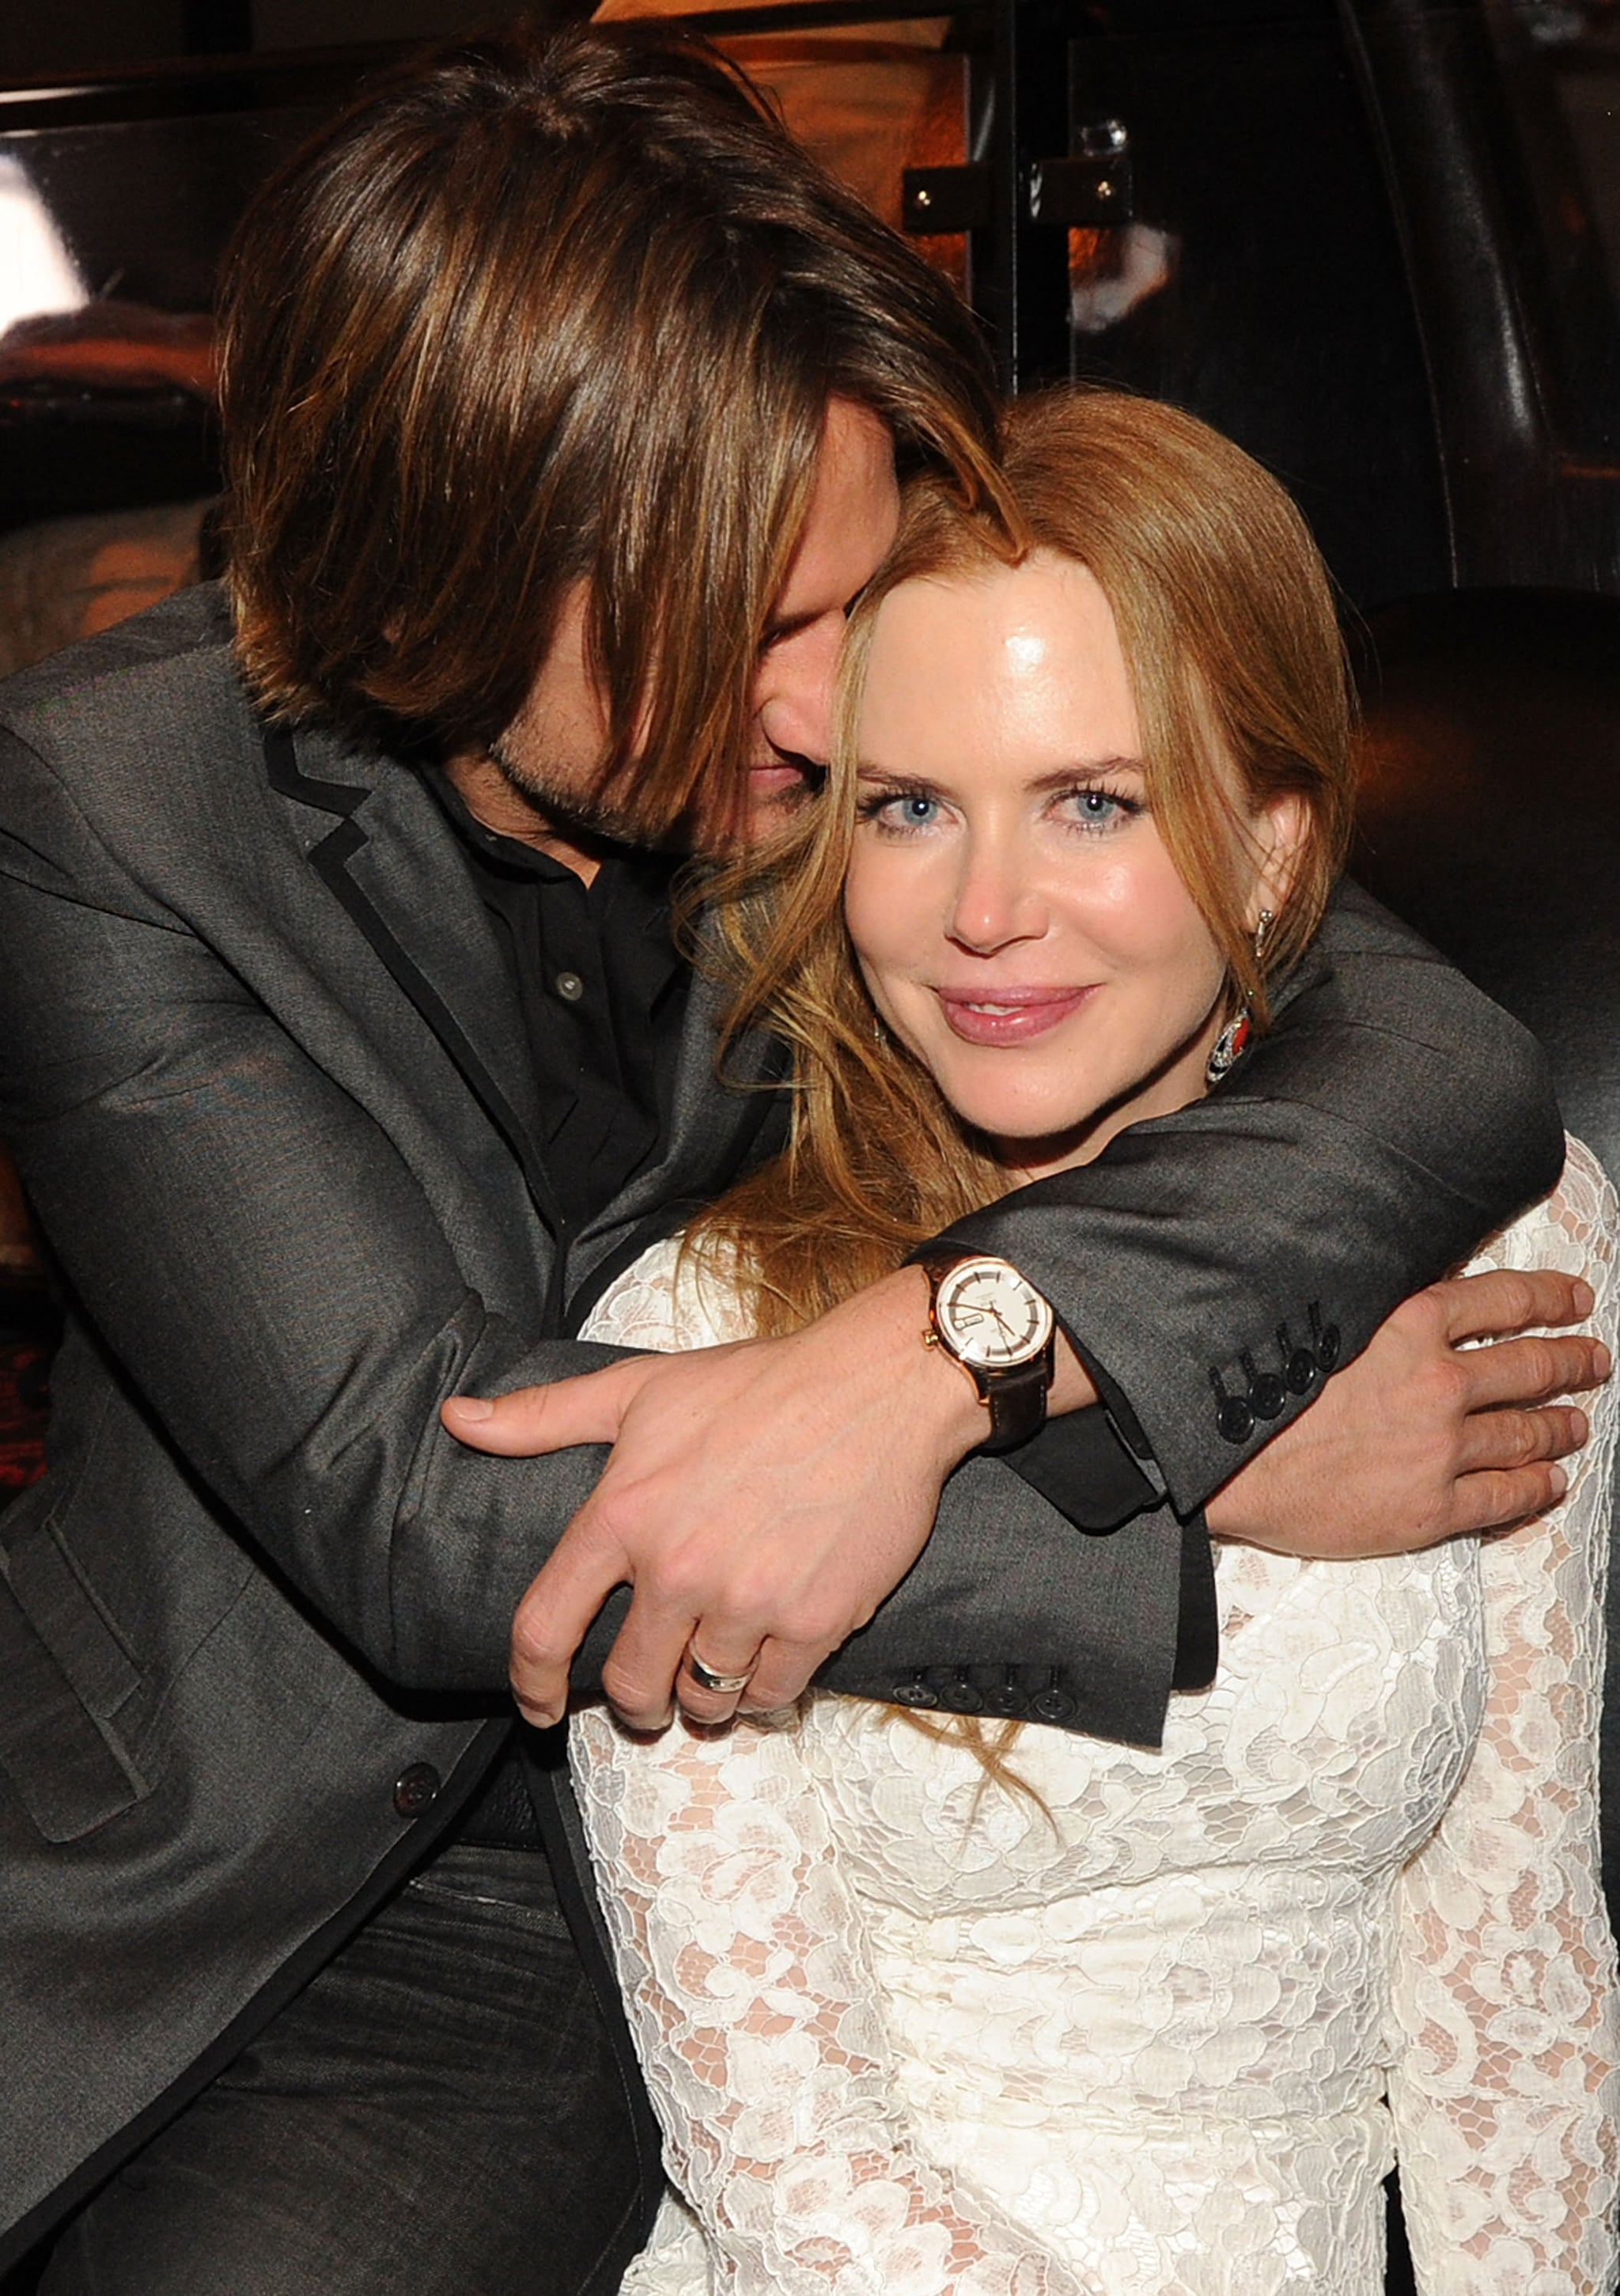 In November 2010, Keith got close to Nicole at a CMA Awards afterparty in Nashville.